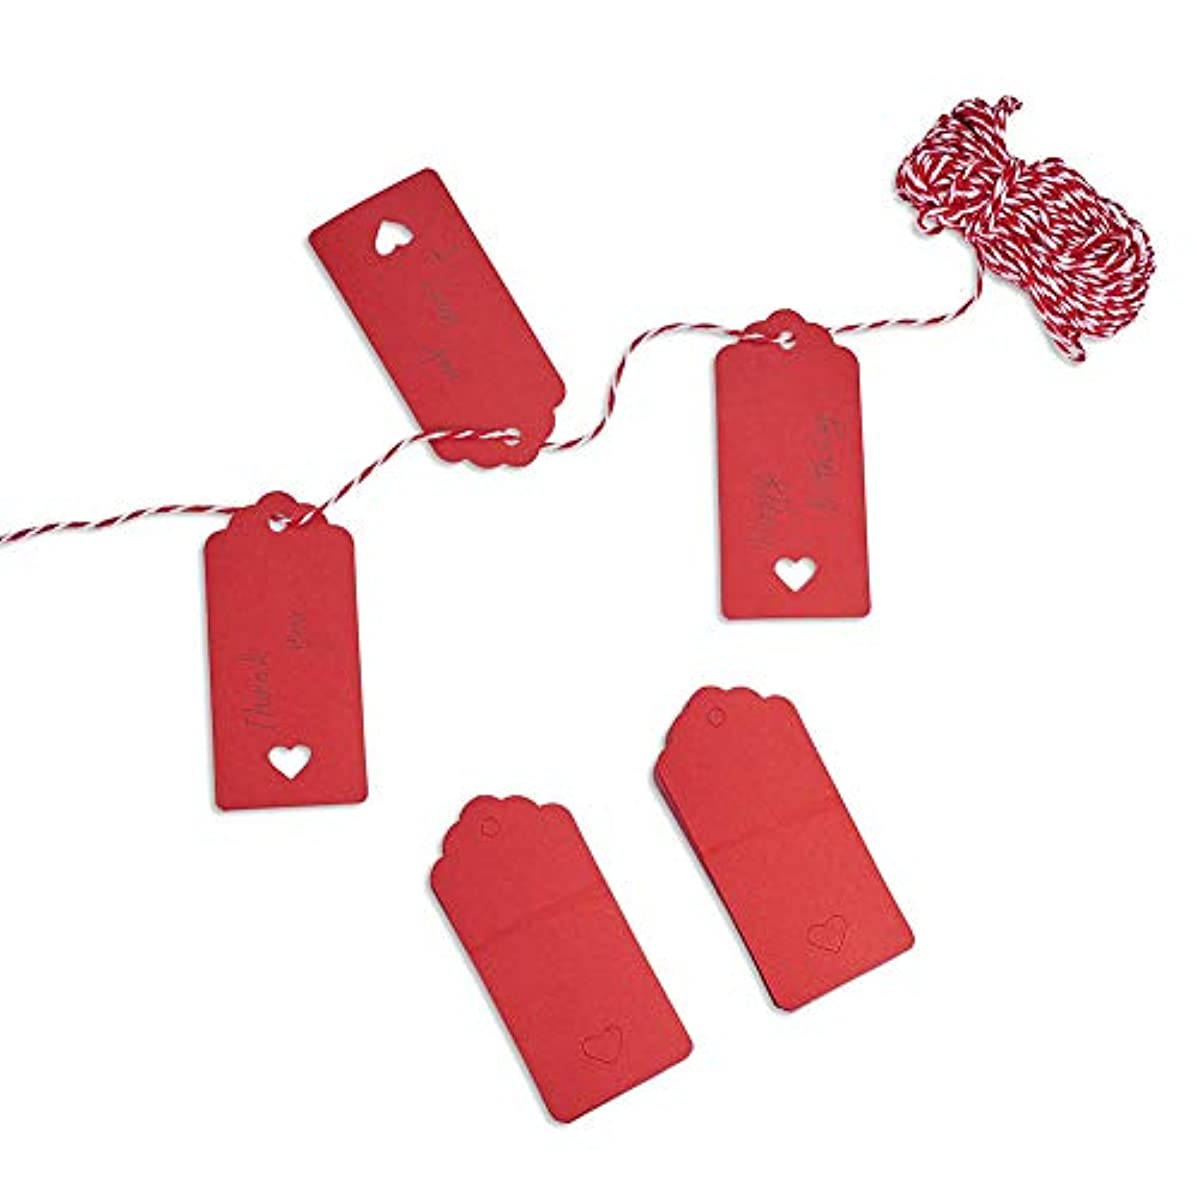 PH PandaHall 100PCS Red Kraft Gift Tags Blank Paper Hang Tags Price Tags with 65 Feet String for Wedding Christmas Day Thanksgiving DIY Craft(95x45mm)